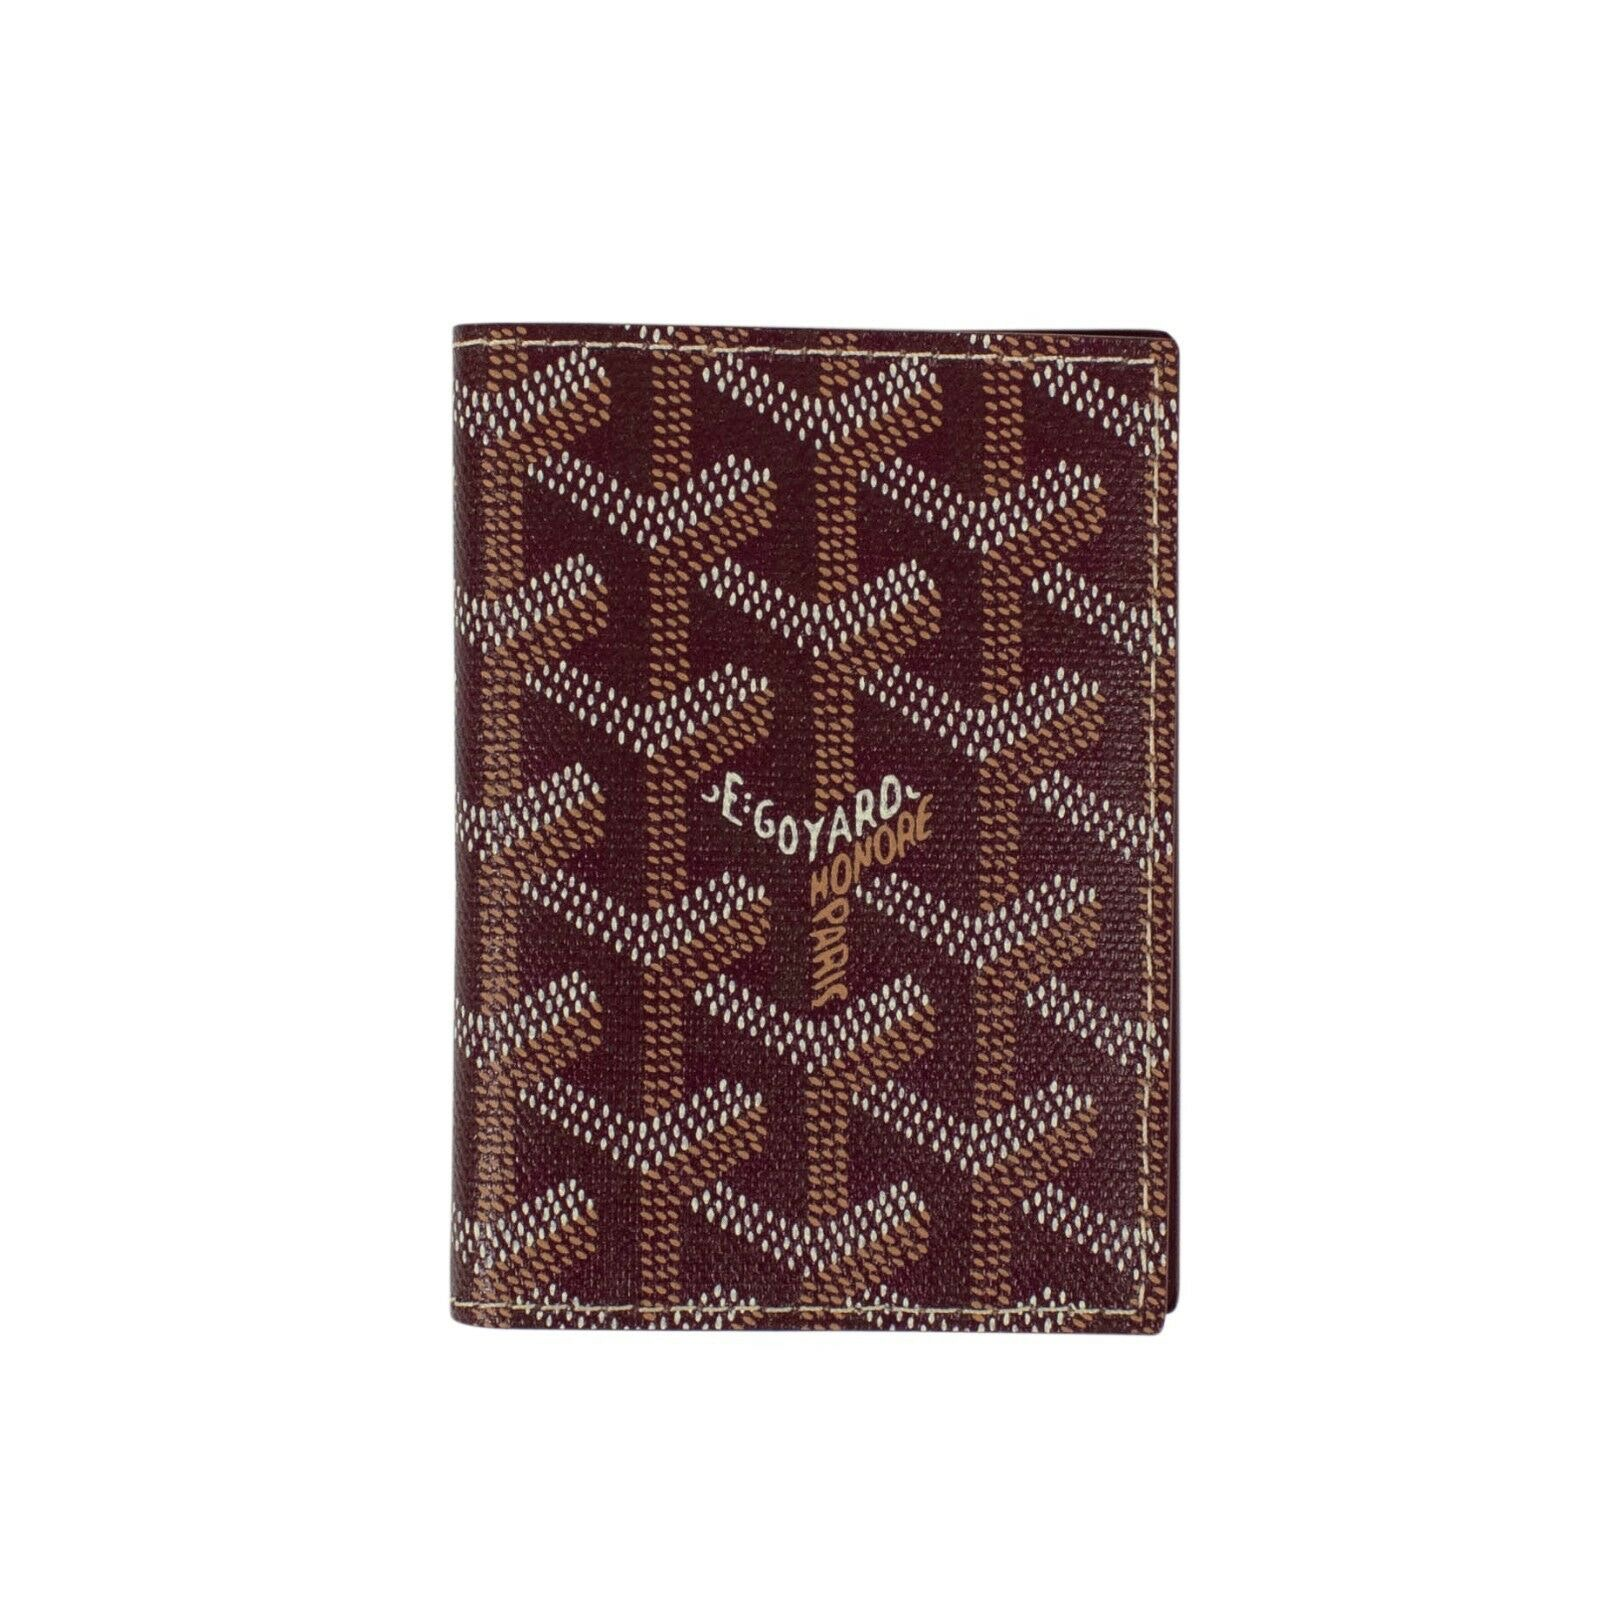 Goyard Saint Marc's Card Case Monogram Chevron Burgundy